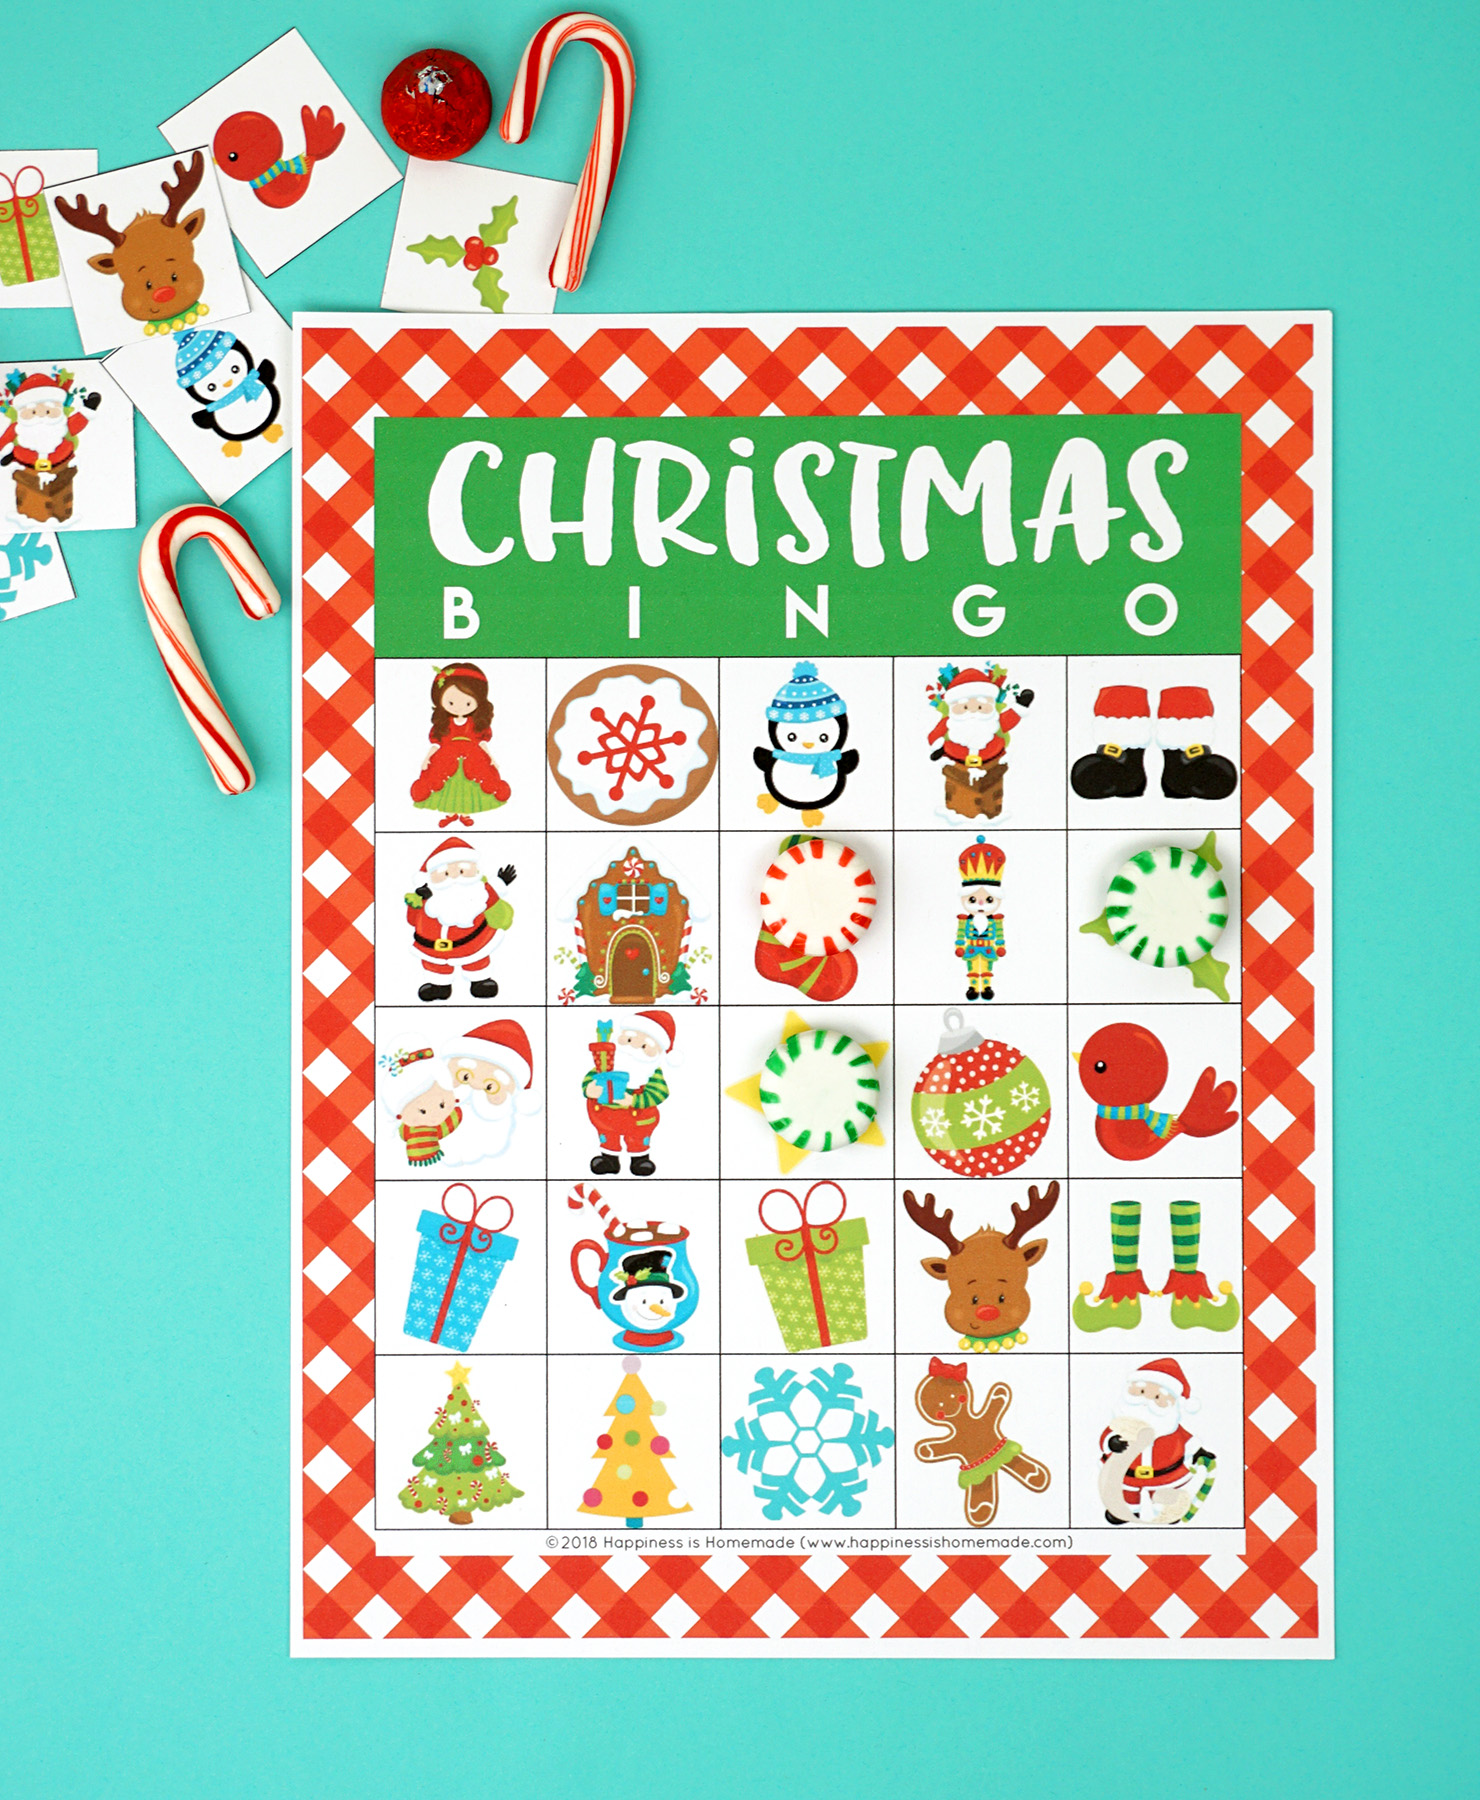 photograph about Christmas Bingo Printable called Printable Xmas Bingo Recreation - Contentment is Do-it-yourself